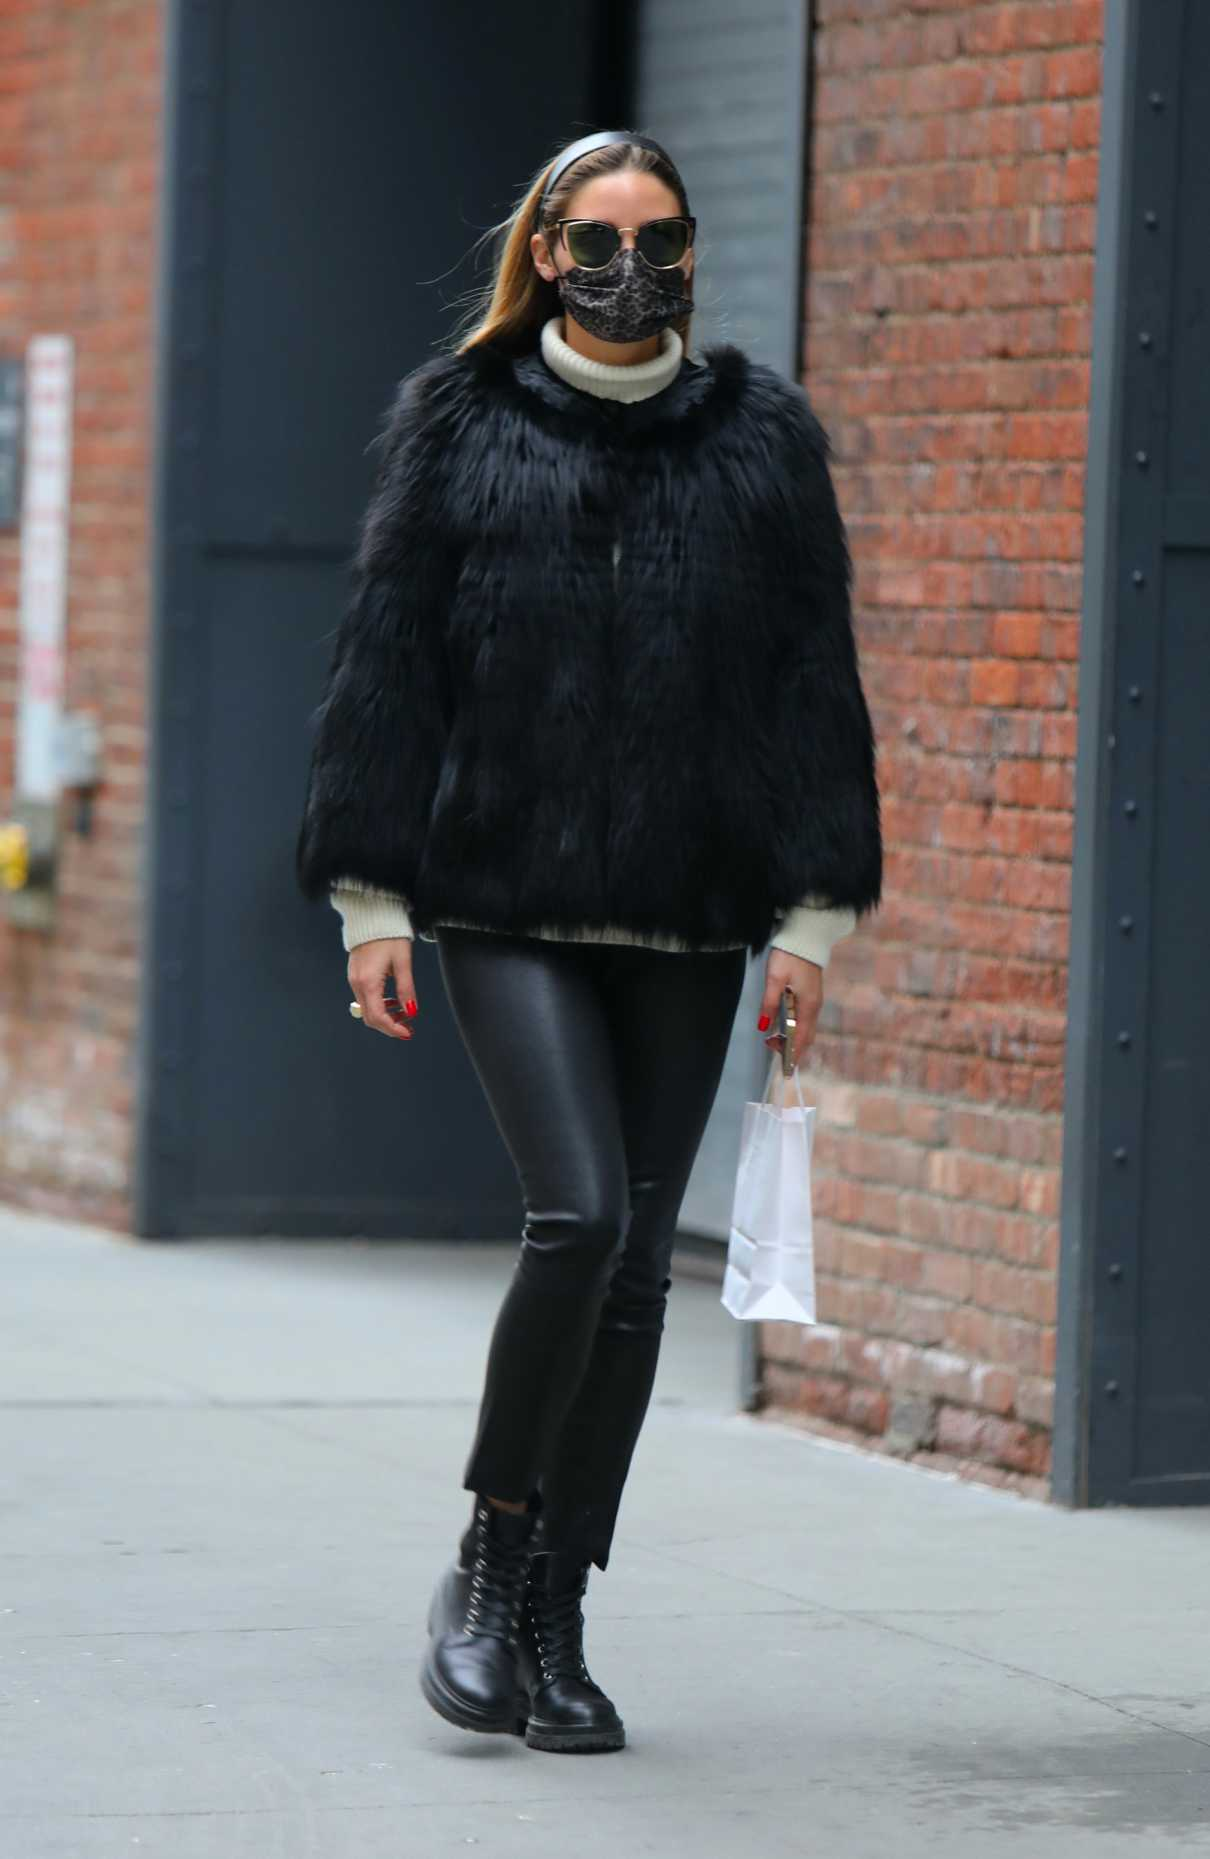 Olivia Palermo in a Black Outfit